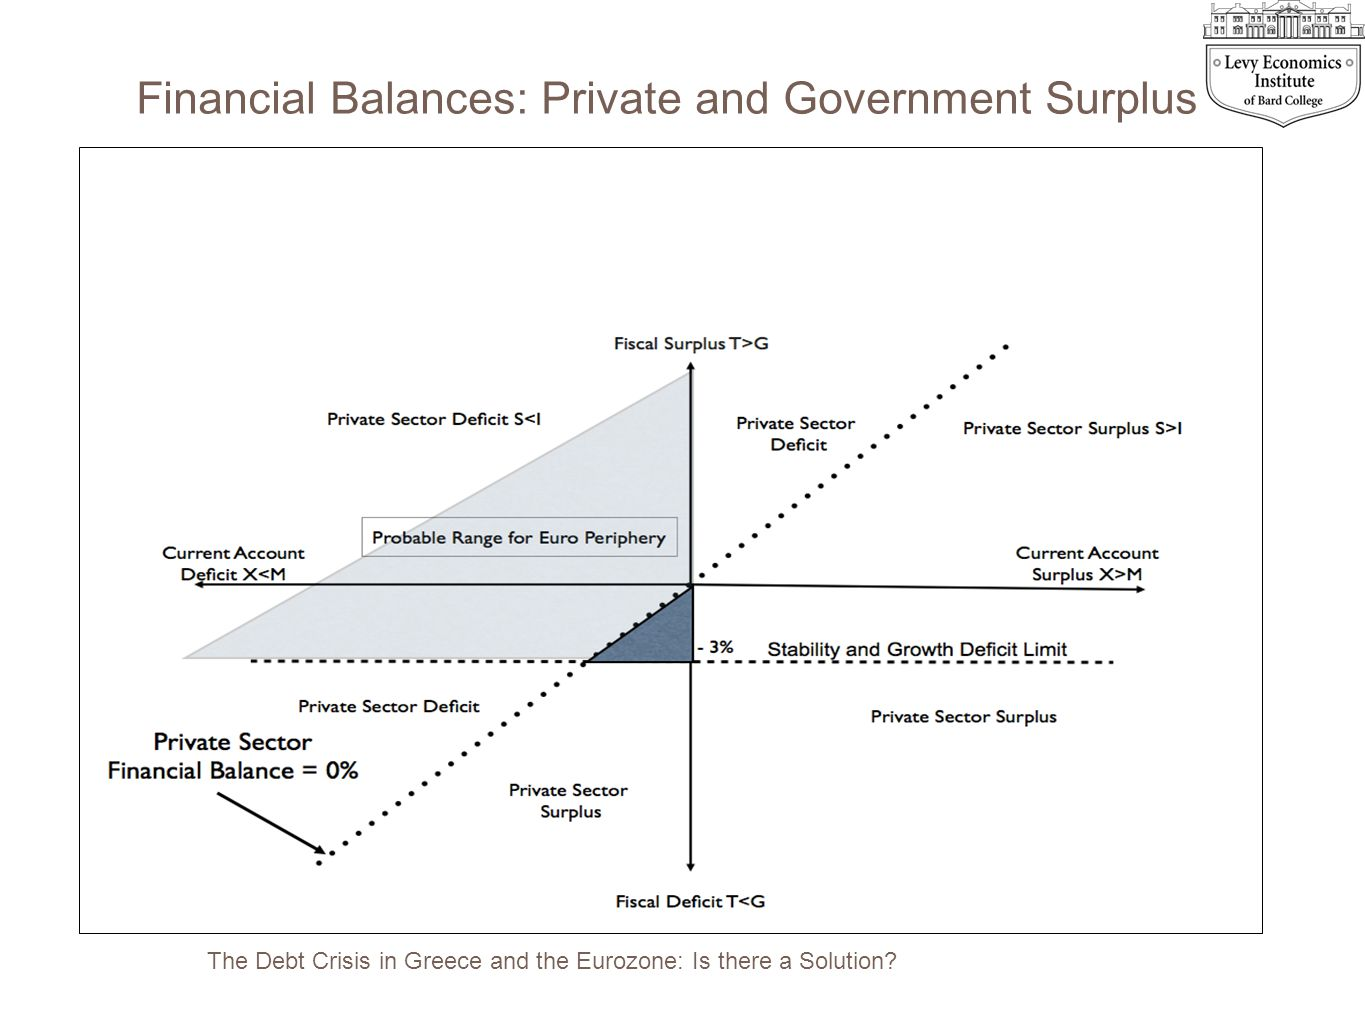 Financial Balances: Private and Government Surplus